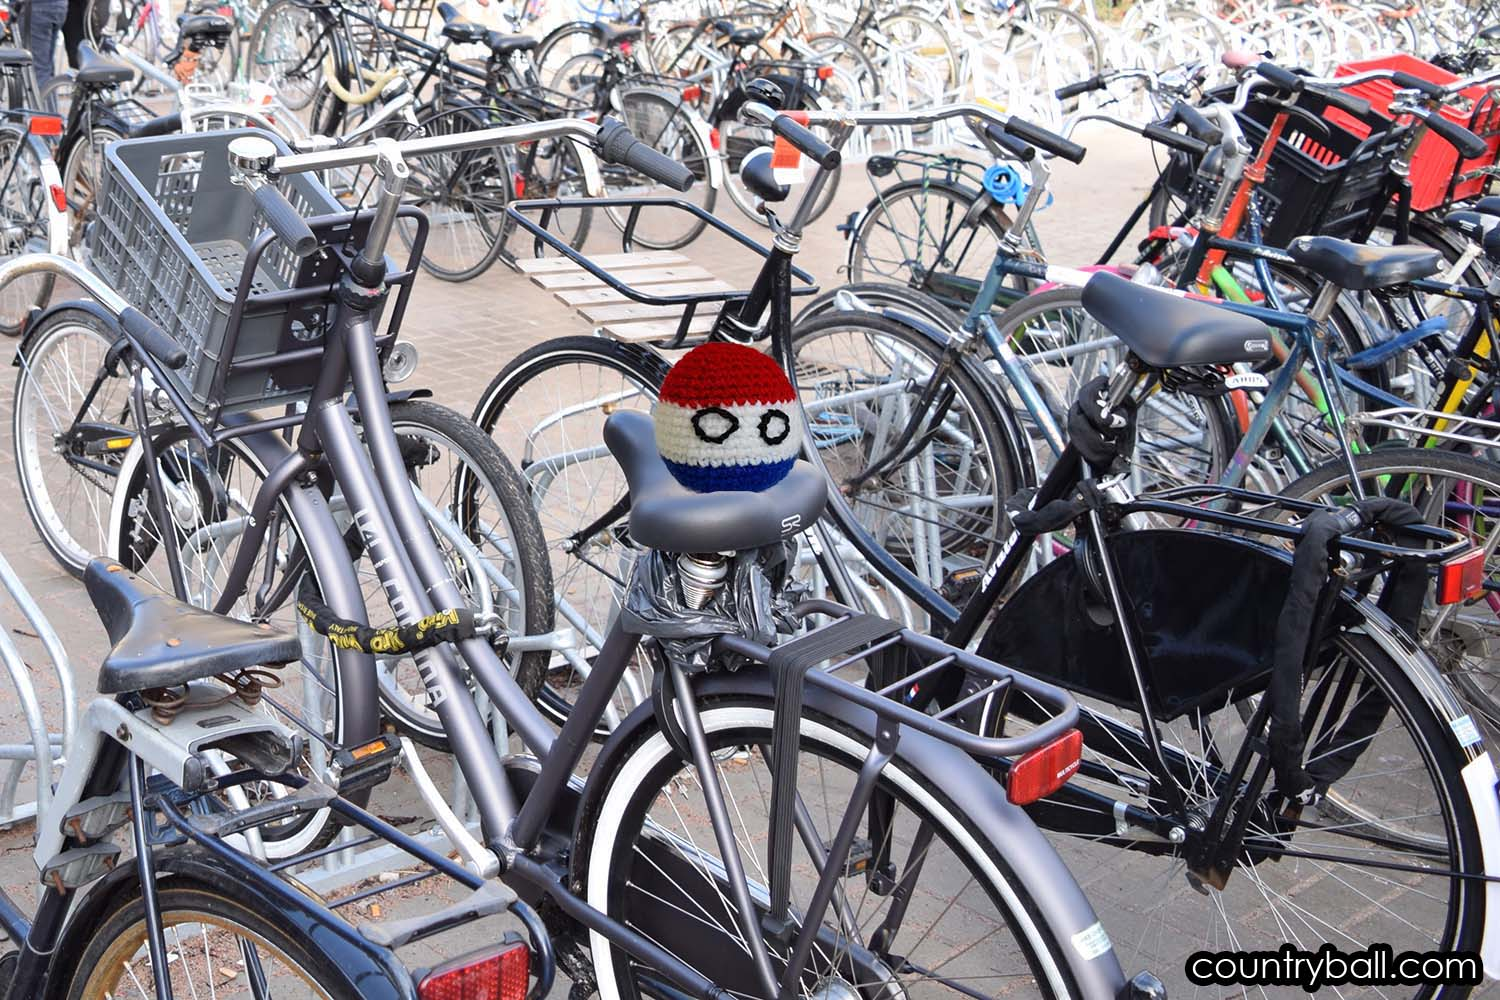 Netherlandsball and hundreds of Bikes